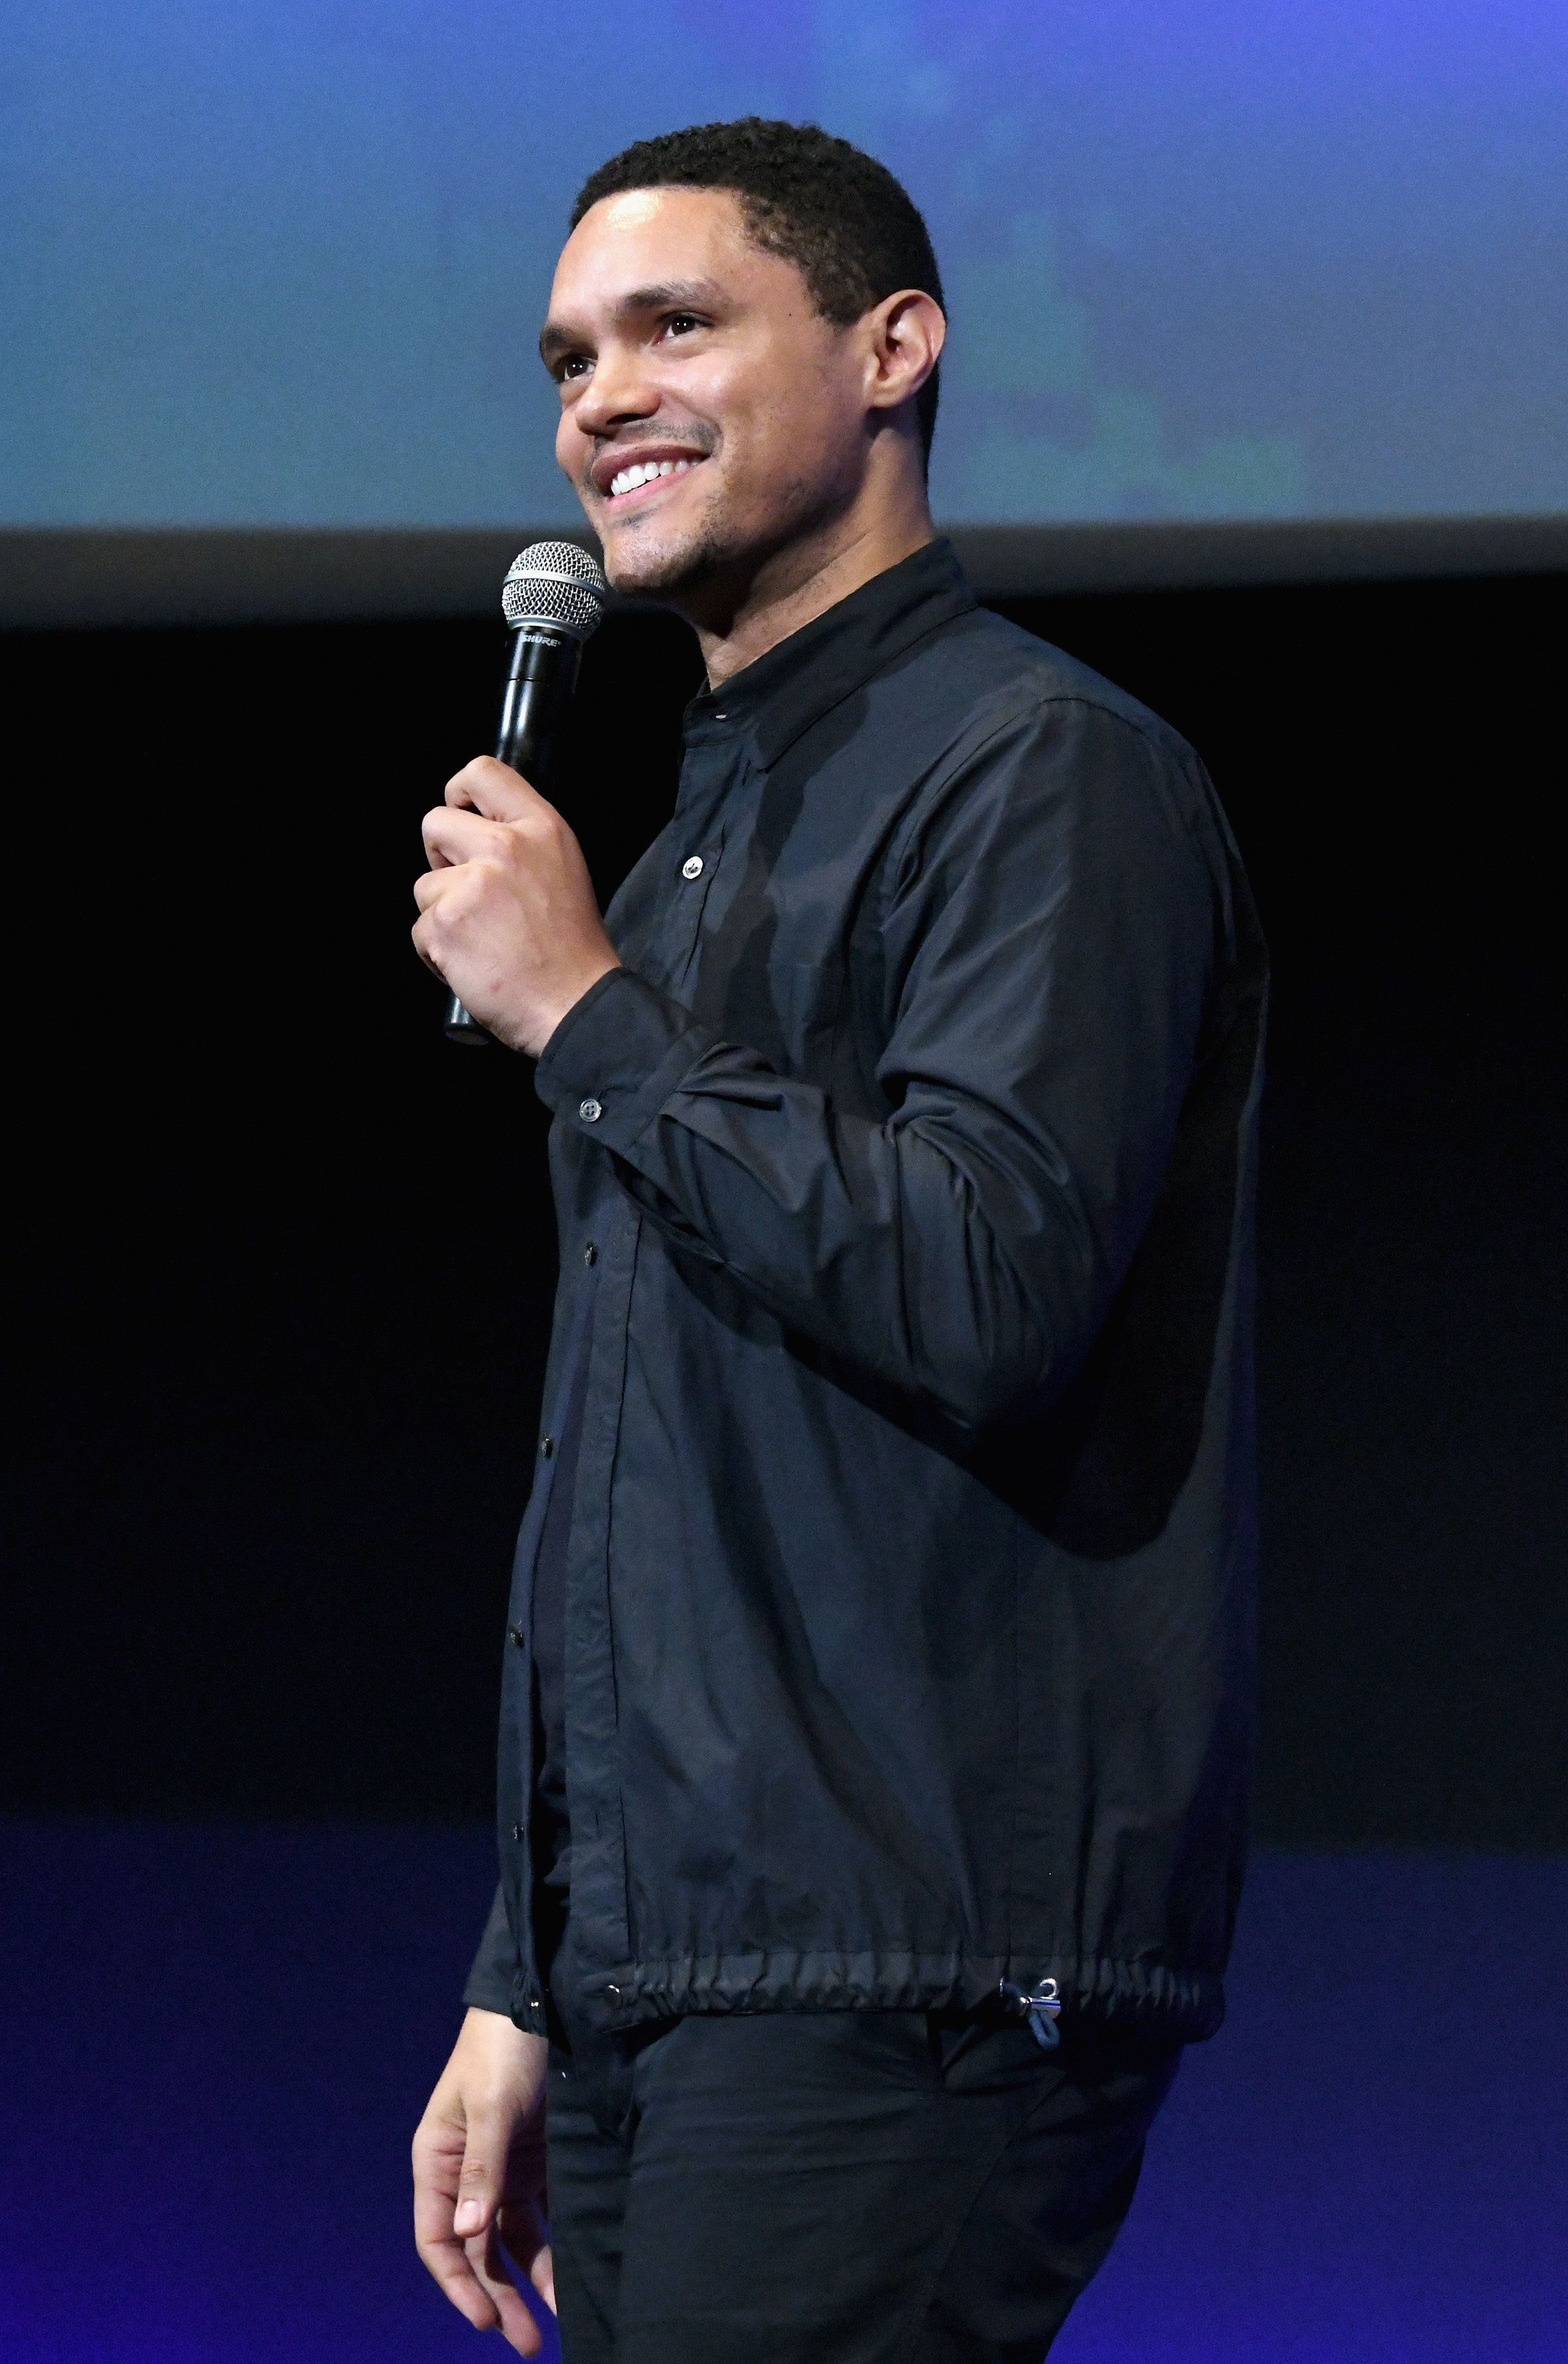 BURBANK, CA - OCTOBER 13:  Trevor Noah performs onstage at the Barbara Berlanti Heroes Gala Benefitting FCancer at Warner Bros. Studios on October 13, 2018 in Burbank, California.  (Photo by Michael Kovac/Getty Images for FCancer)